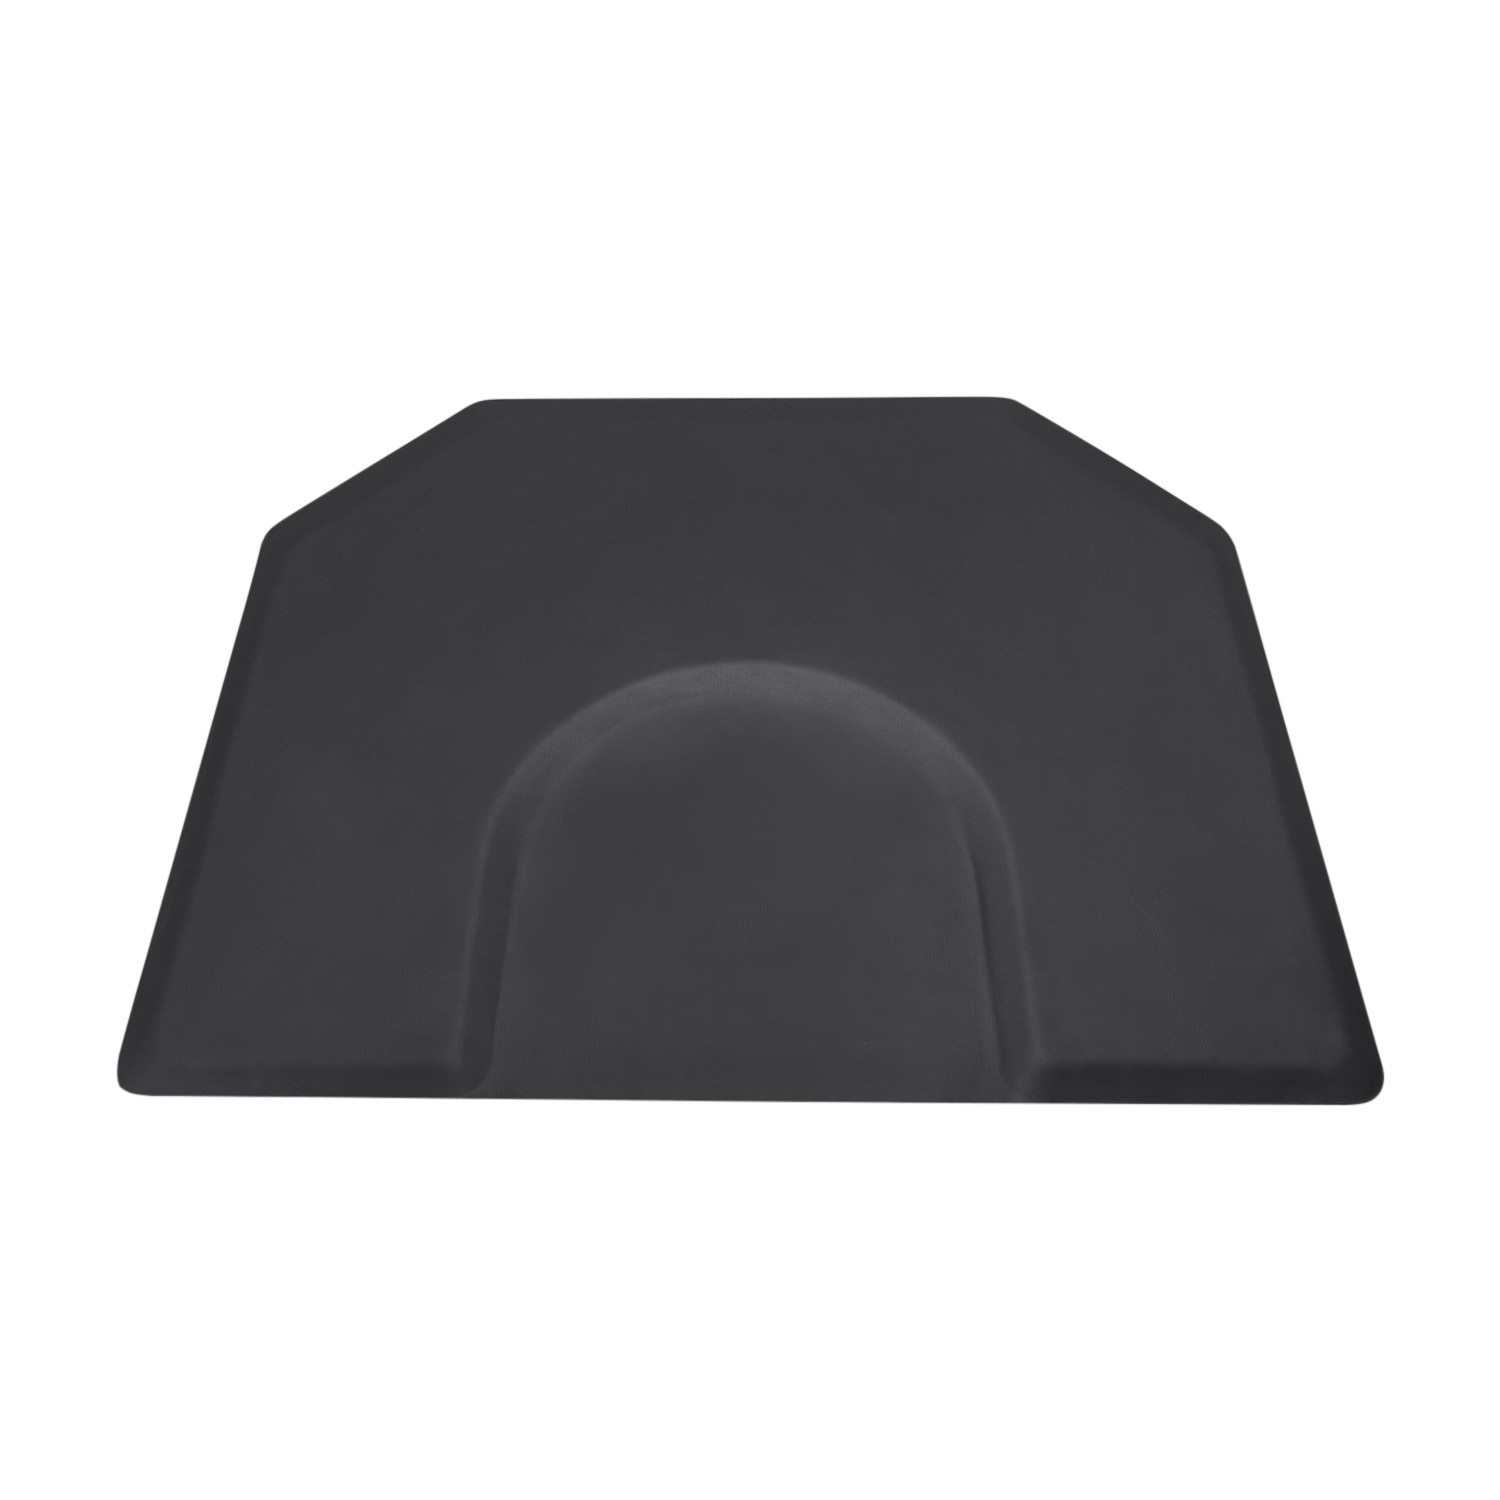 Hexagon 4x5 Salon Anti-Fatigue Mat Round Impression alternative product image 2